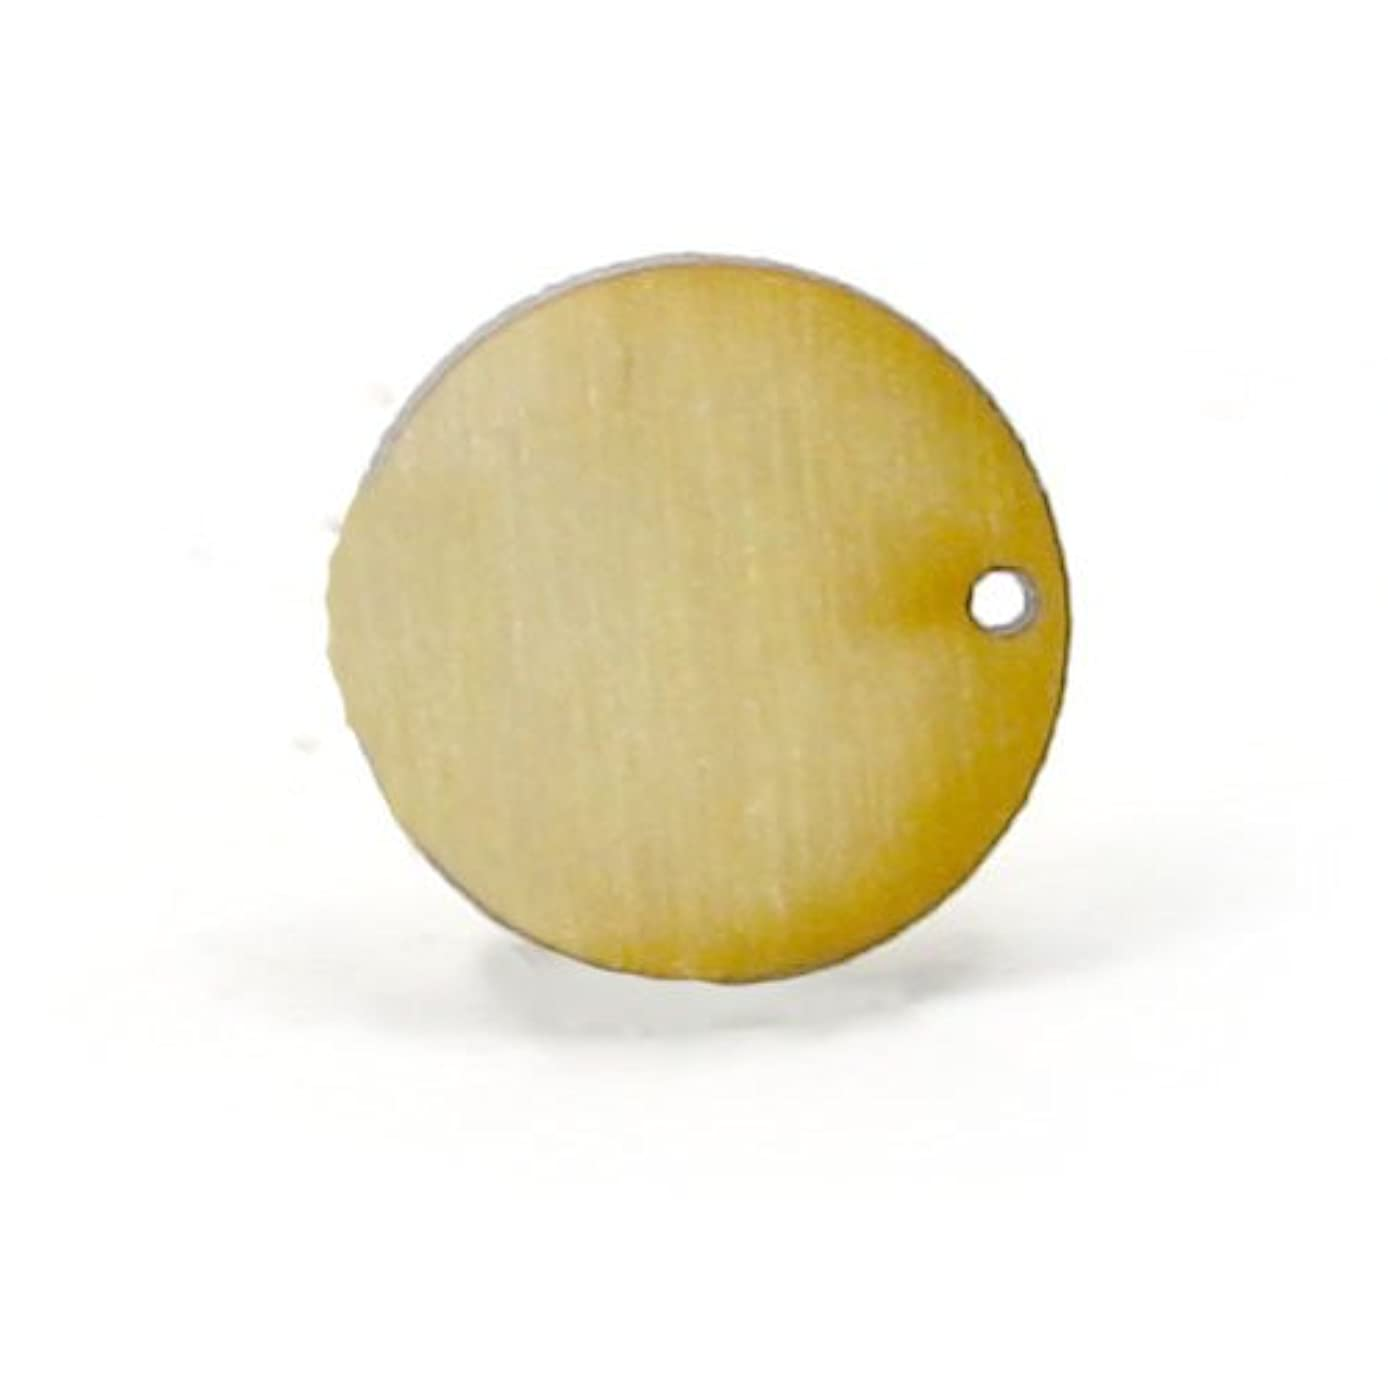 Mylittlewoodshop Pkg of 100 - Circle Cutout - 3/4 inch in diameter with 1 1mm holes and 1/8 inch thick unfinished wood (LC-CCWH04-100)